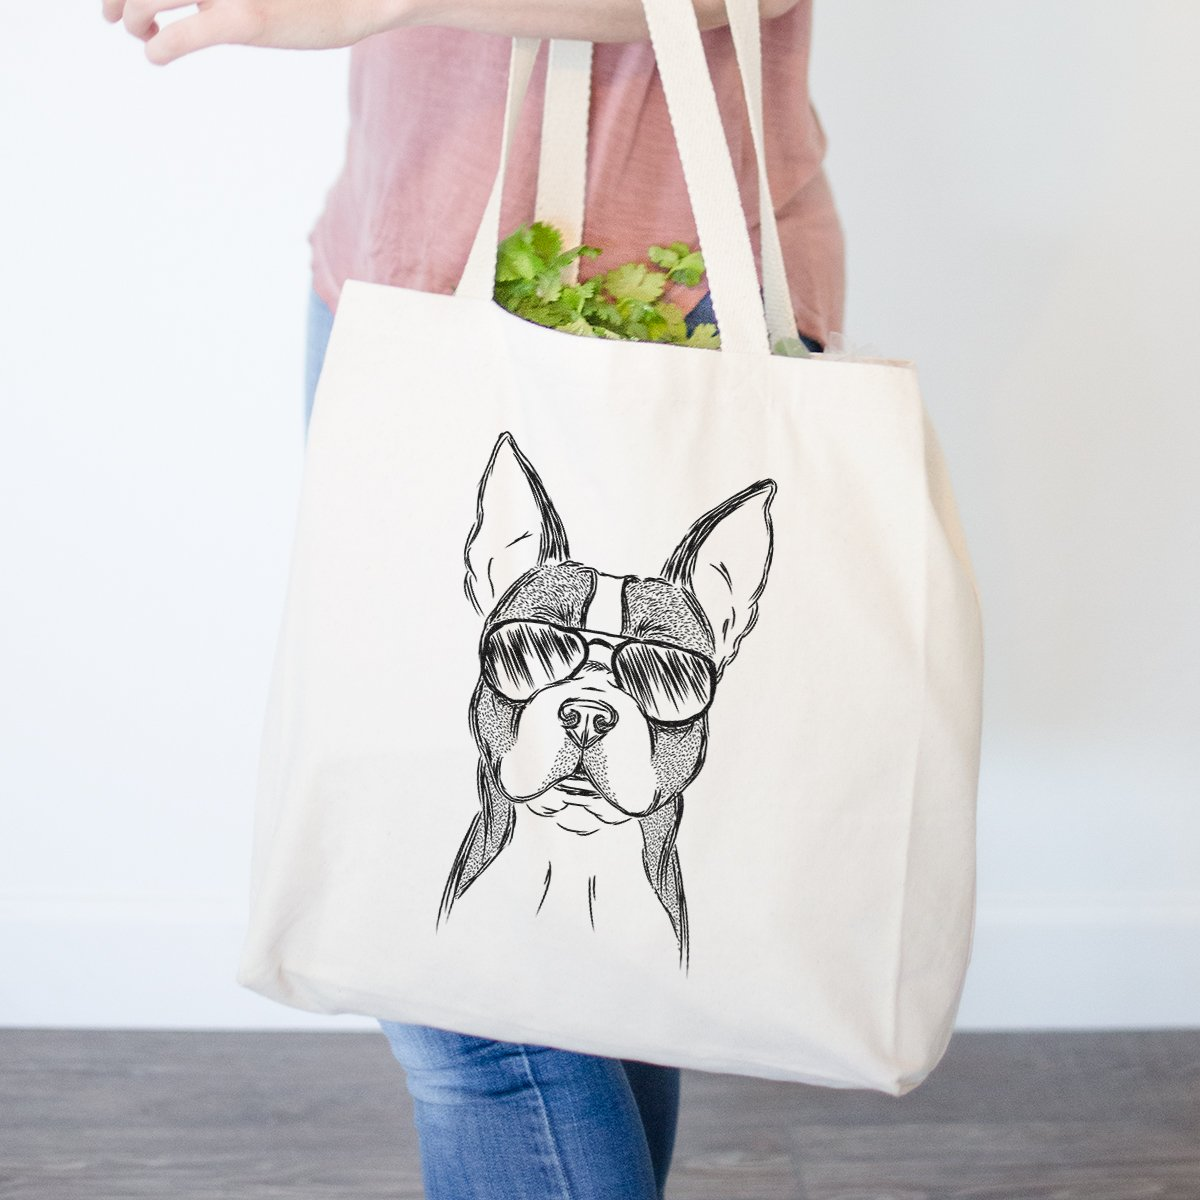 Scout TheボストンテリアHeavy Duty 100 %コットンキャンバストートバッグショッピングReusable Grocery Bag 14.75インチx 14.75 X 5 Printed 1 Side ベージュ TOTE-Scout-BostonTerrier-1-side B0793GXQMC  Printed 1 Side